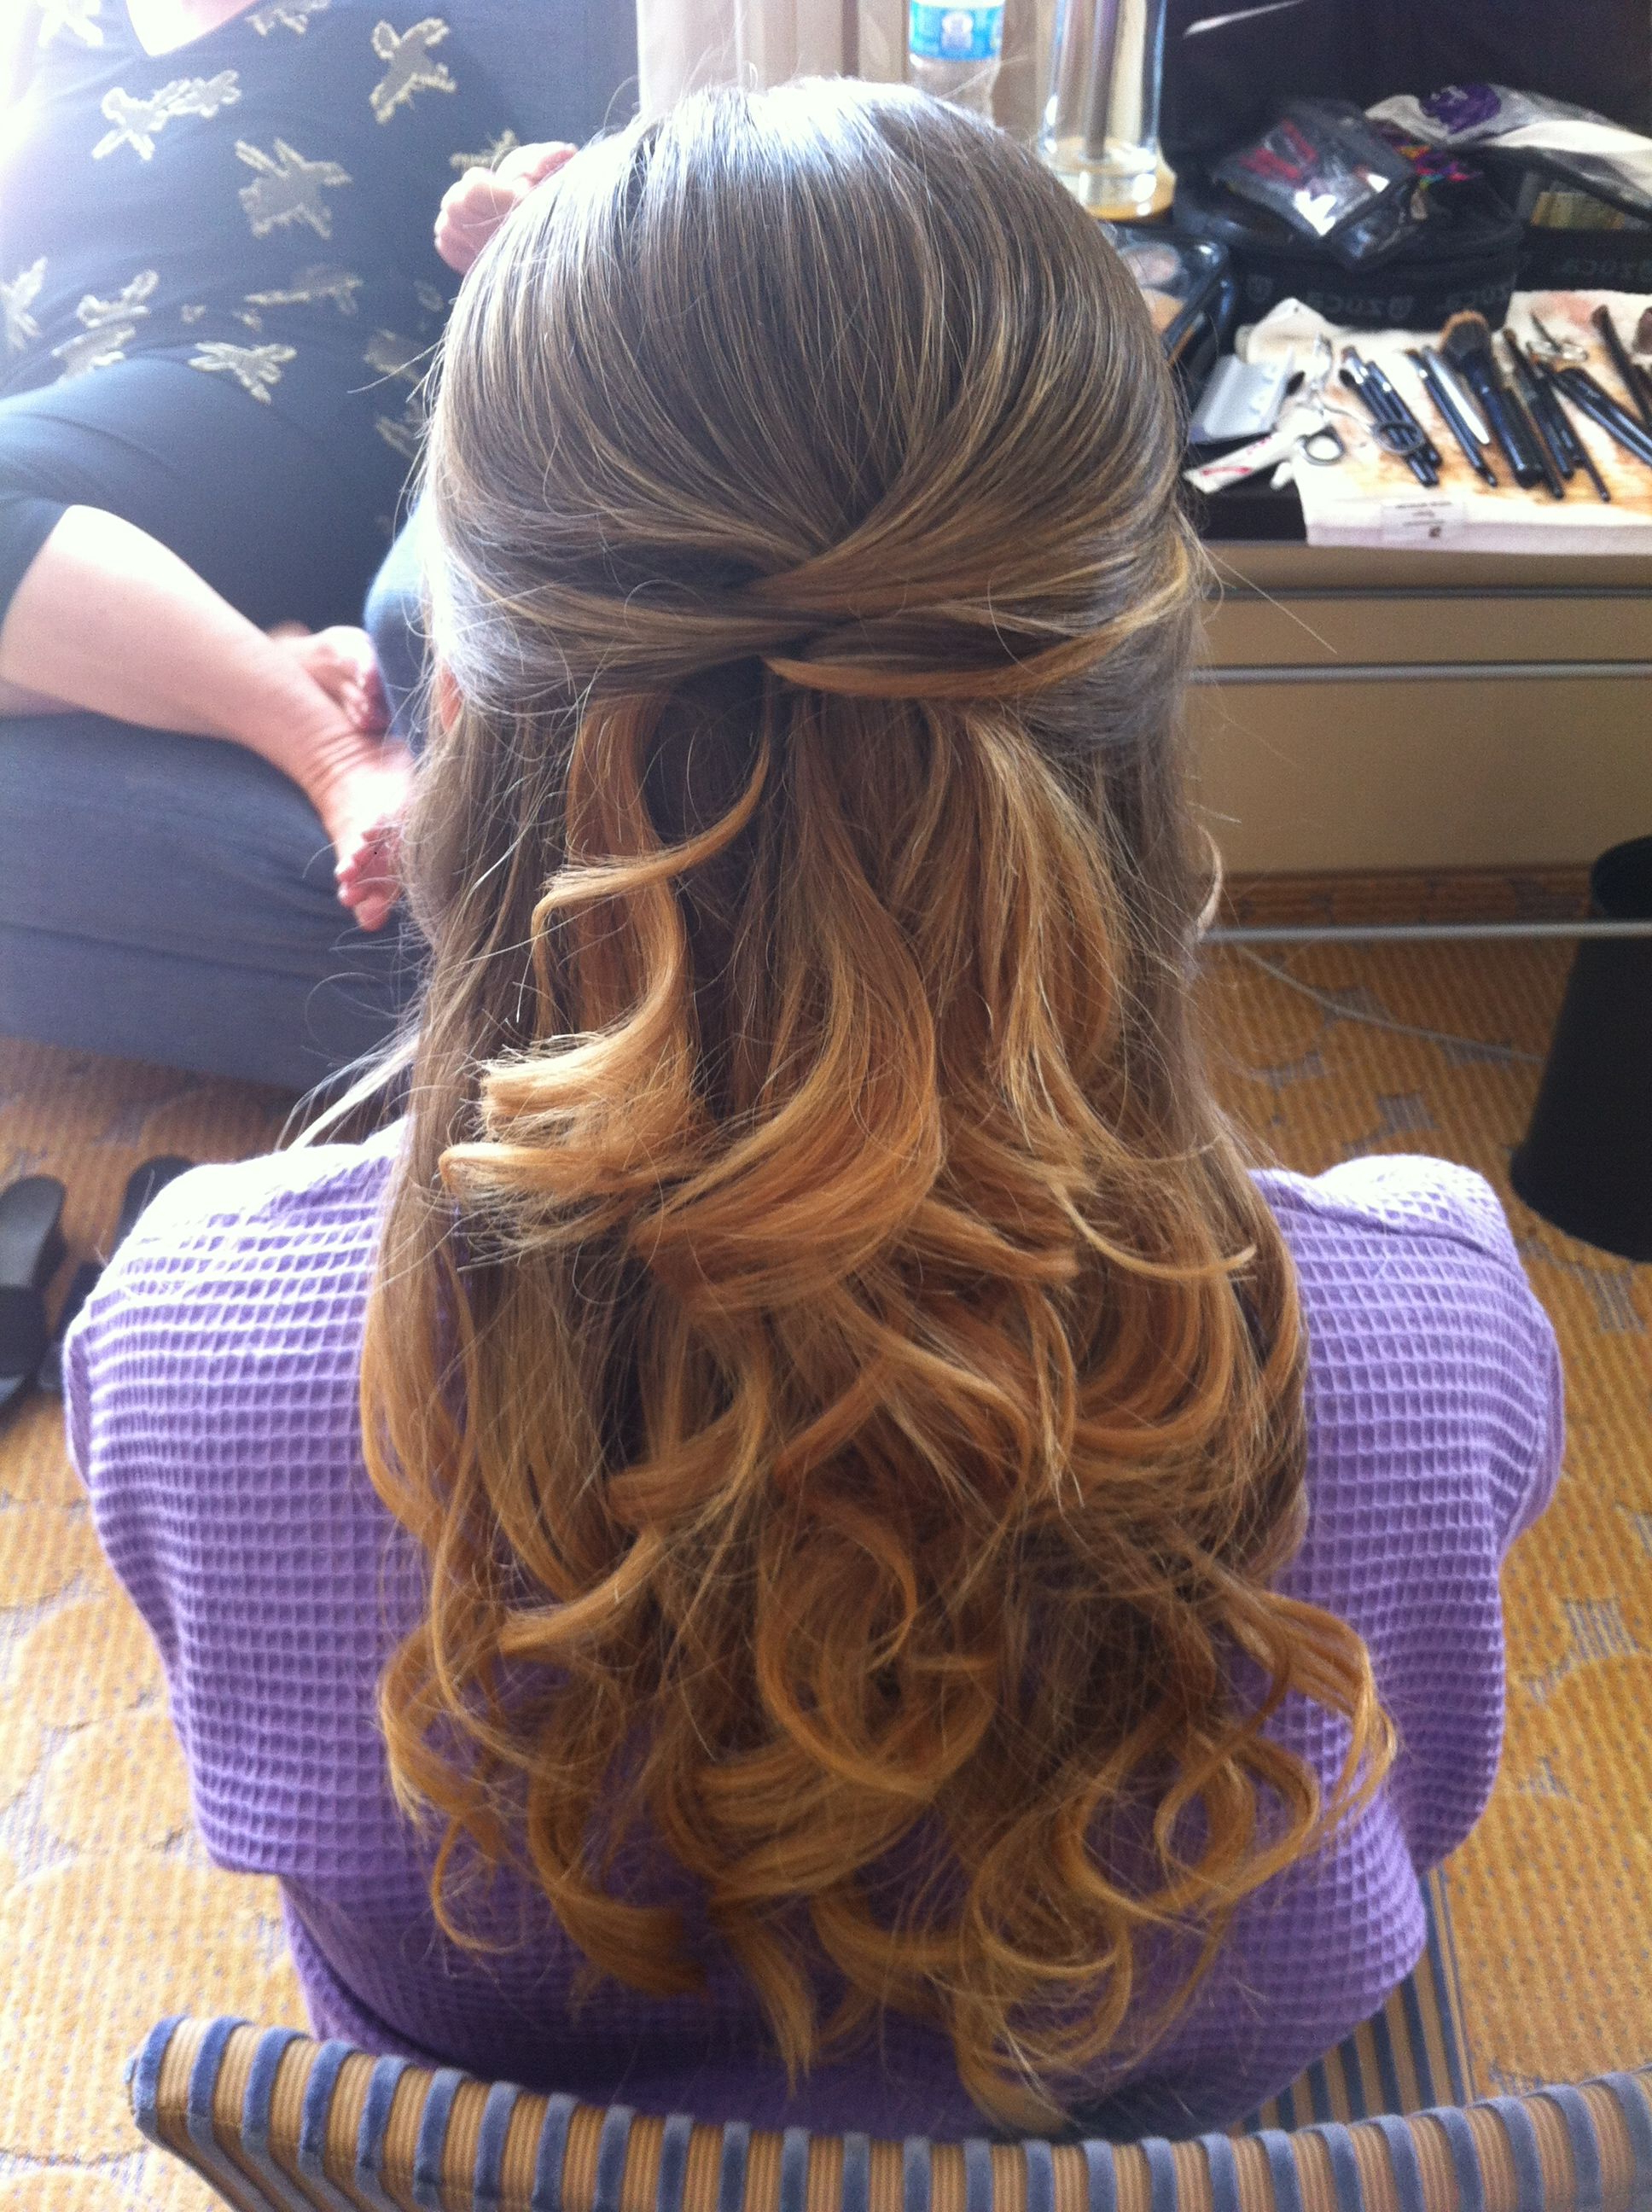 Preferred Side Swept Brunette Waves Hairstyles For Prom In Bridal Hair, Vintage Waves, Soft Curls, Prom, Wedding Updo, Romantic (Gallery 11 of 20)